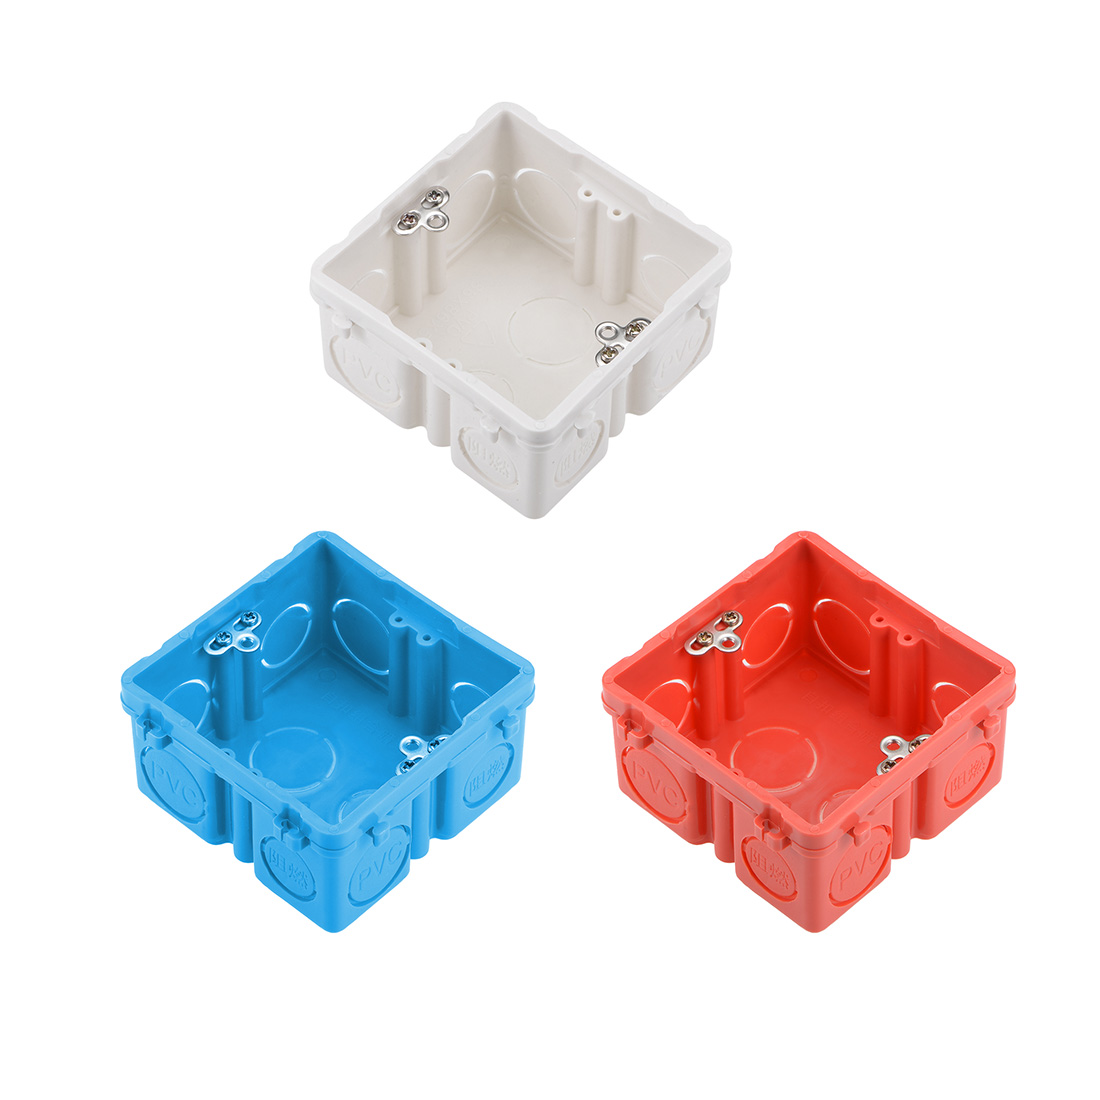 Uxcell Uxcell High Quality 1/2/10 Pieces Wall Switch Box Deep Case Recessed Mount 86 Type Single Gang Red/Blue/White